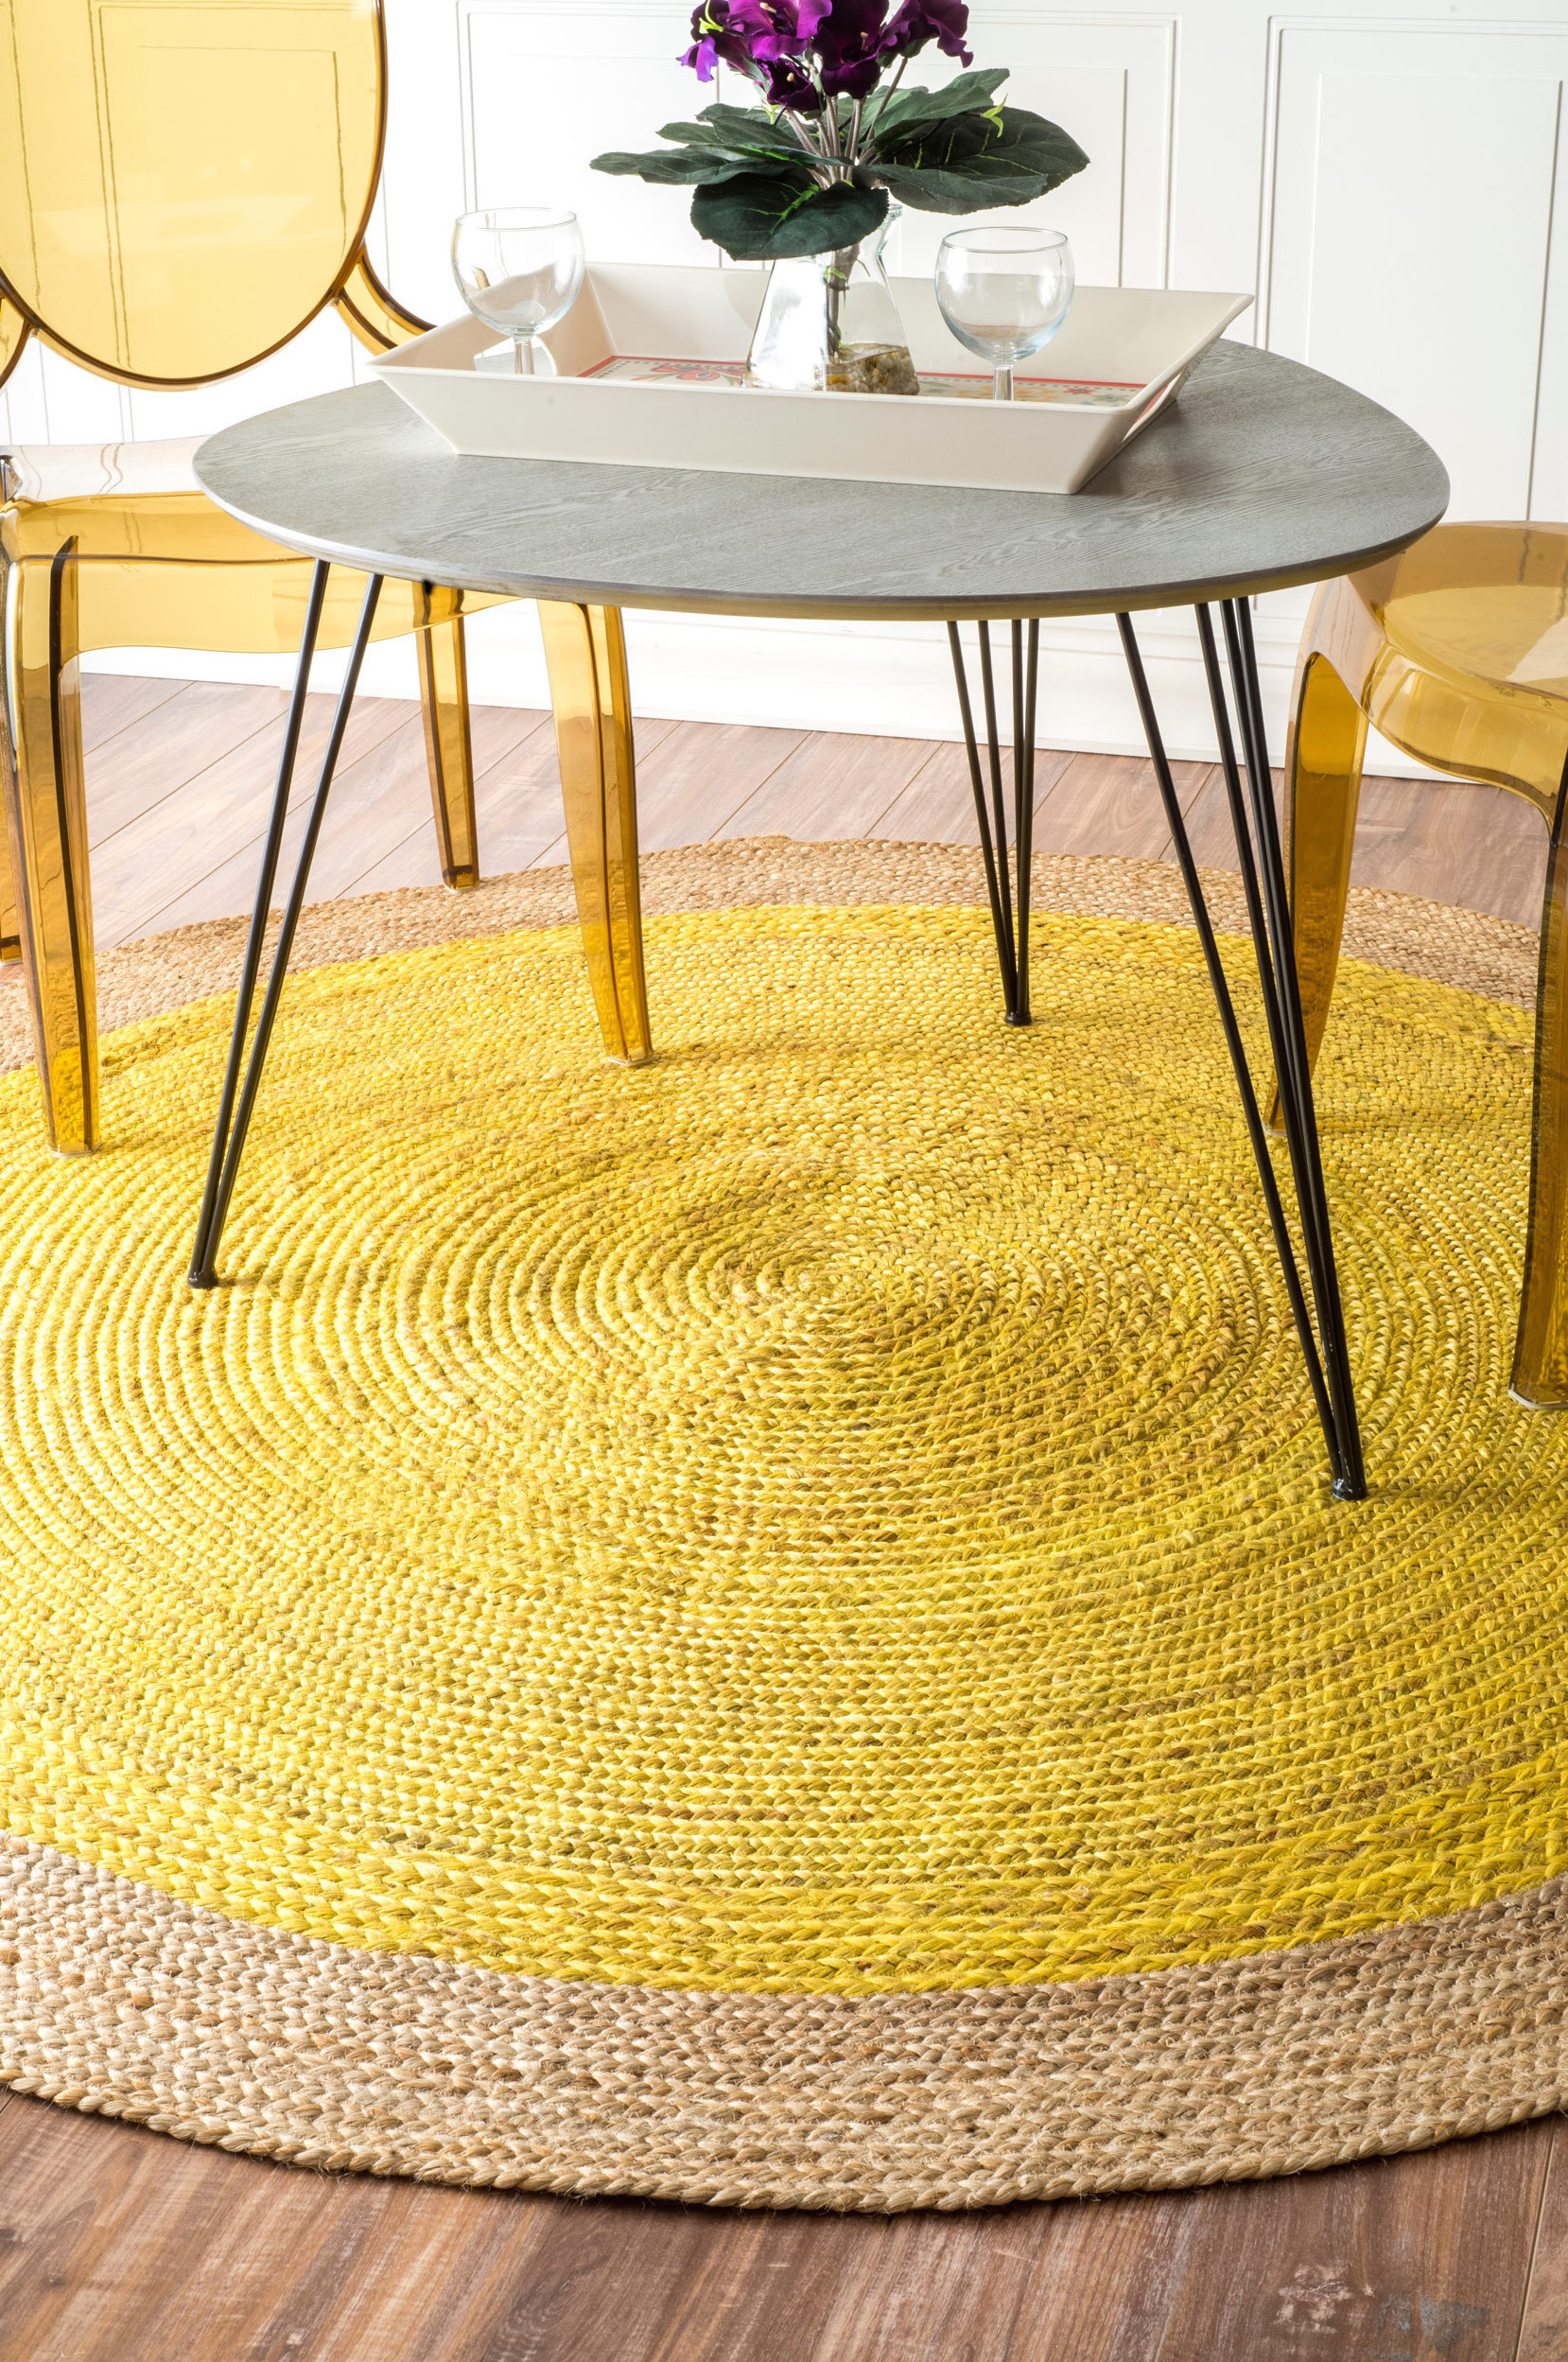 Round yellow nuLOOM rug from Overstock  25 Yellow Rug and Carpet Ideas to Brighten up Any Room Round yellow nuLOOM rug from Overstock